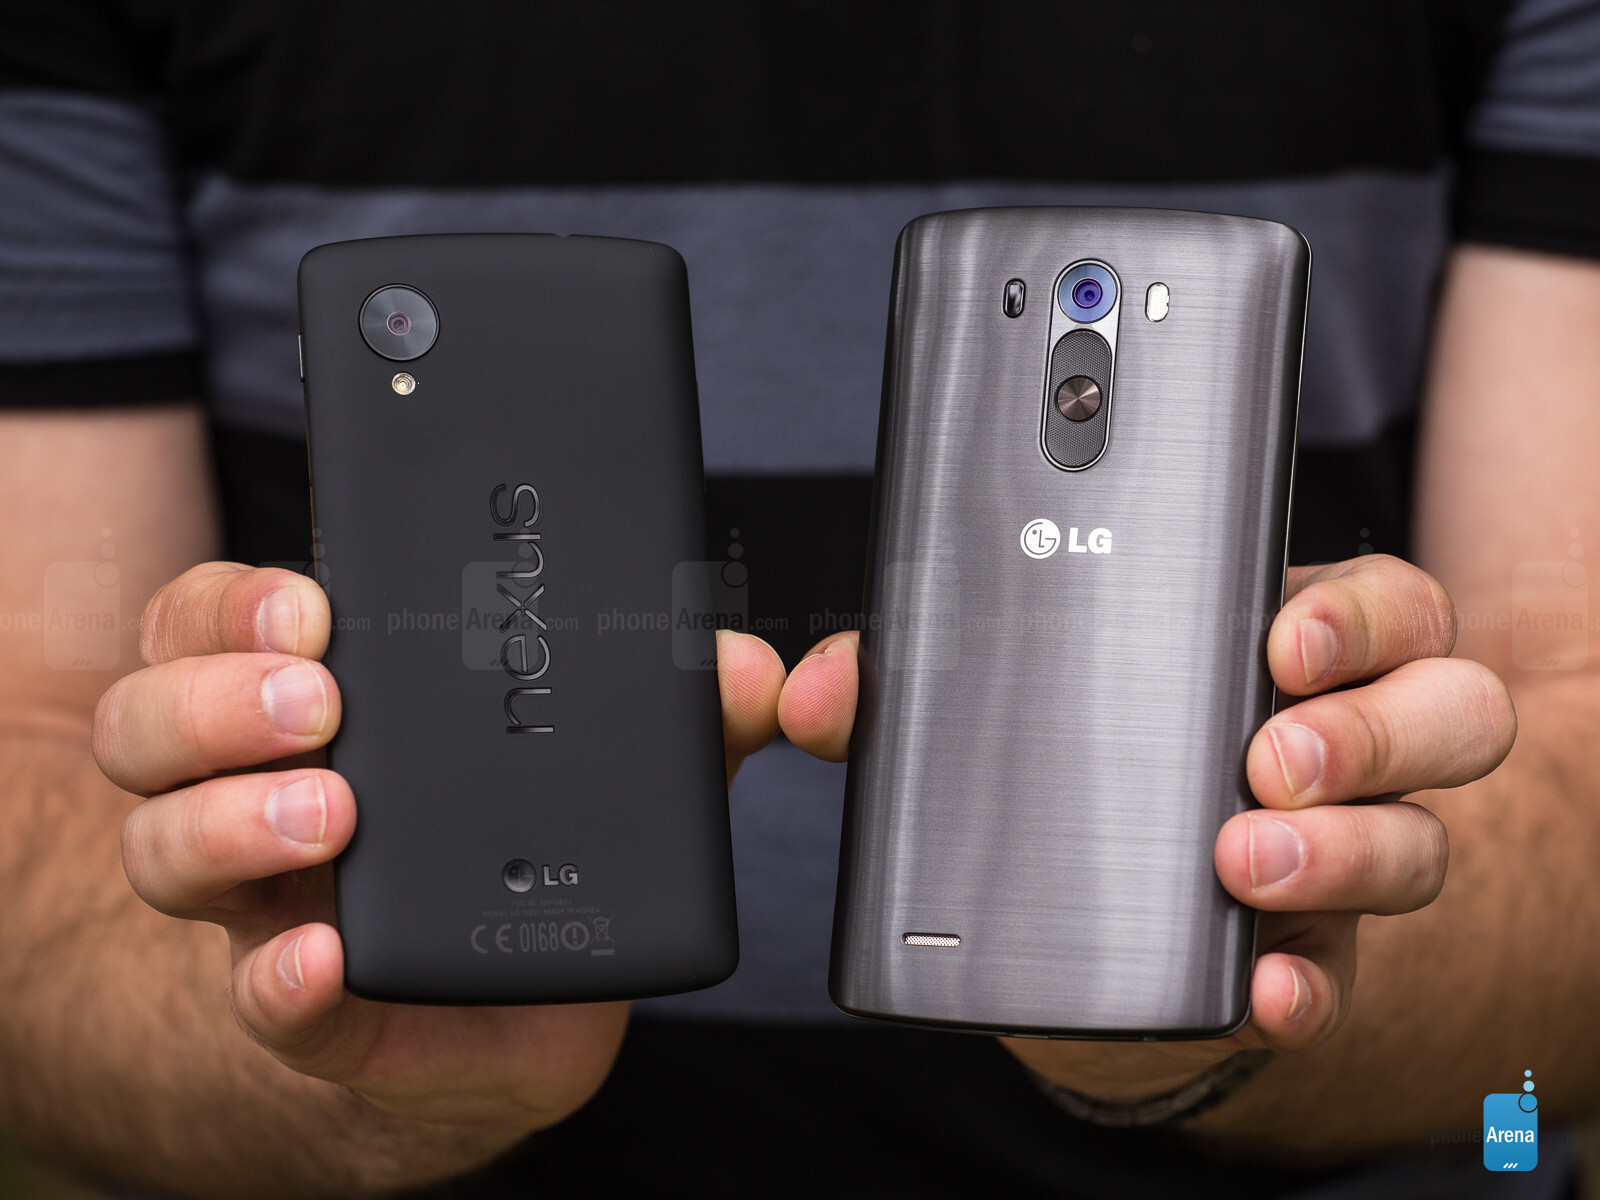 how to open simcard slot on lg nexus